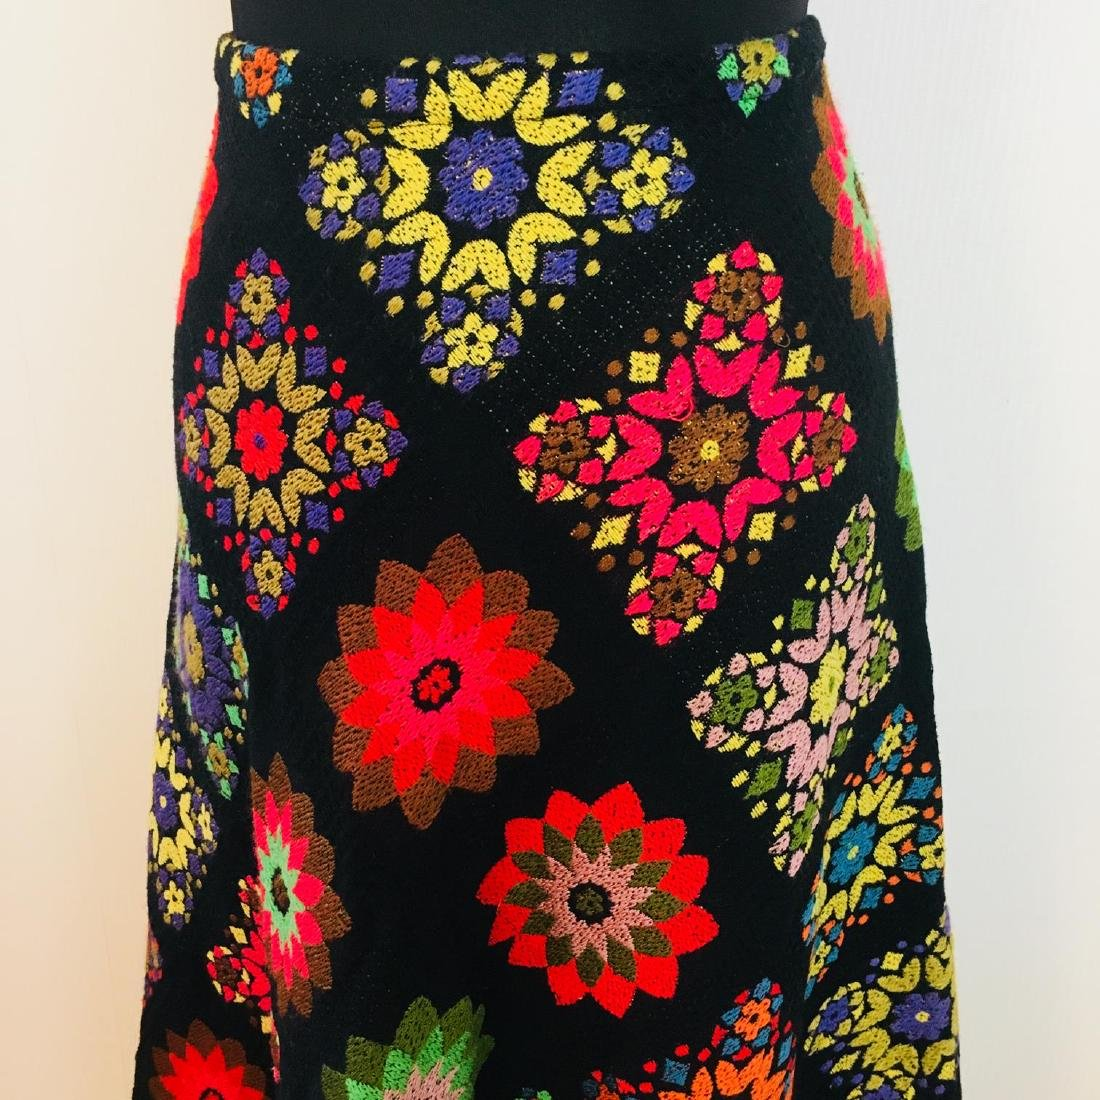 Vintage Women's Skirt With Embroidered Flowers Size EU - 2